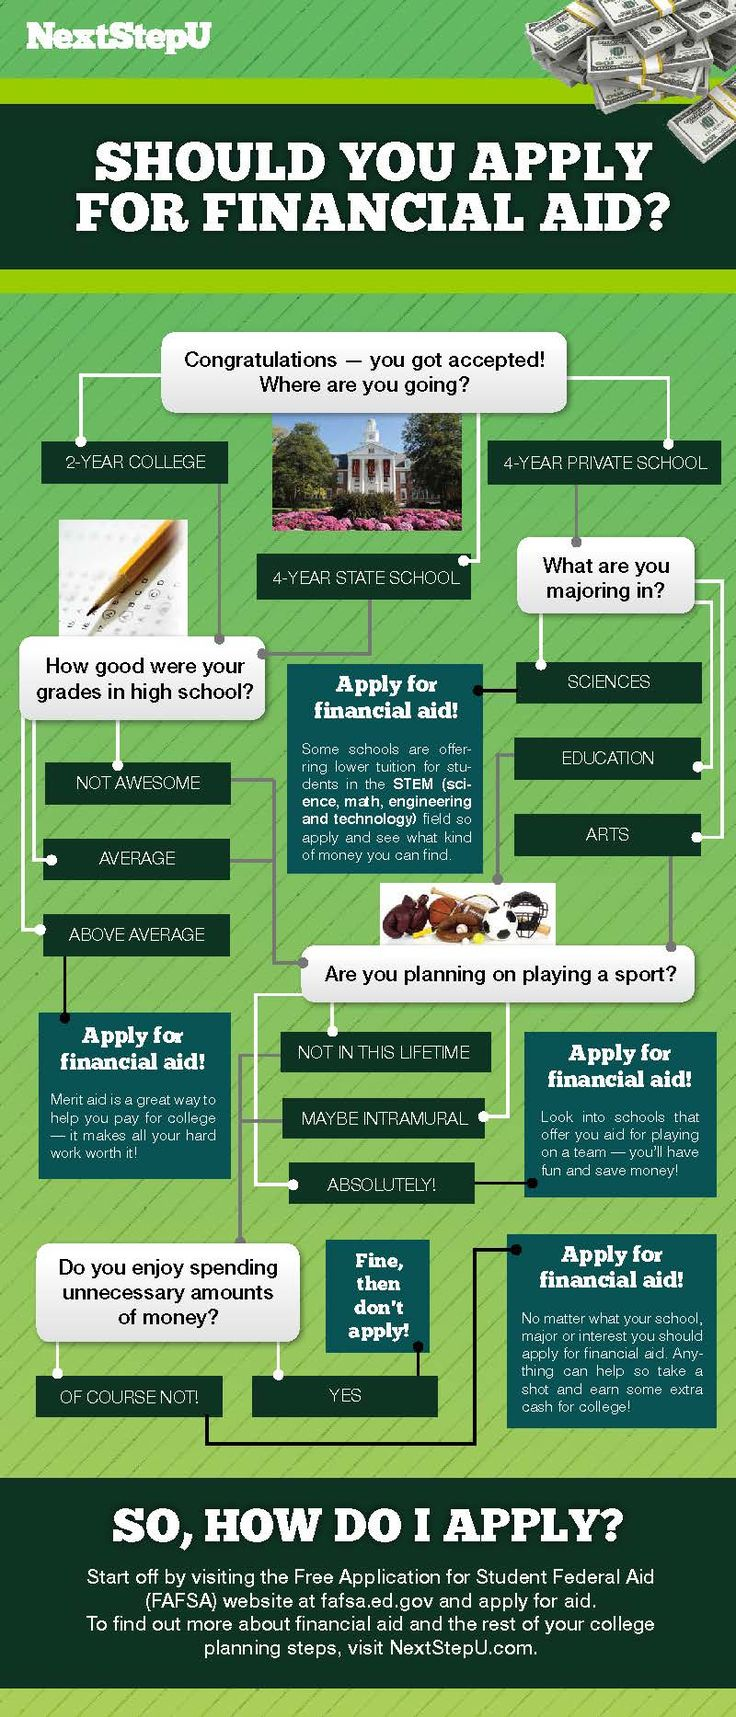 Not sure if you should apply for financial aid? Follow the flowchart to find out!